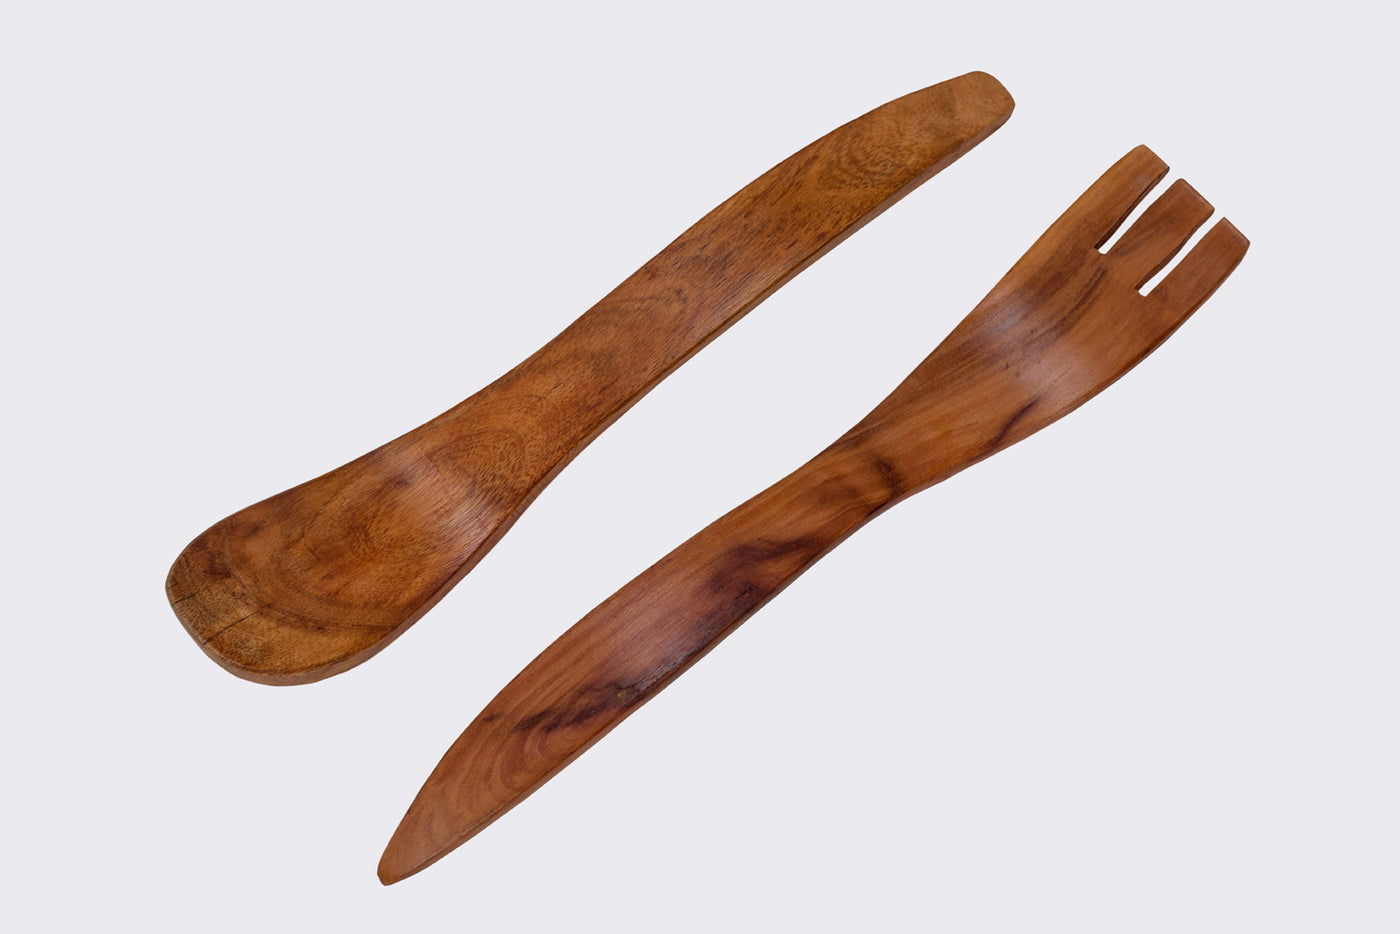 Natural Wooden Duo Servers Serveware